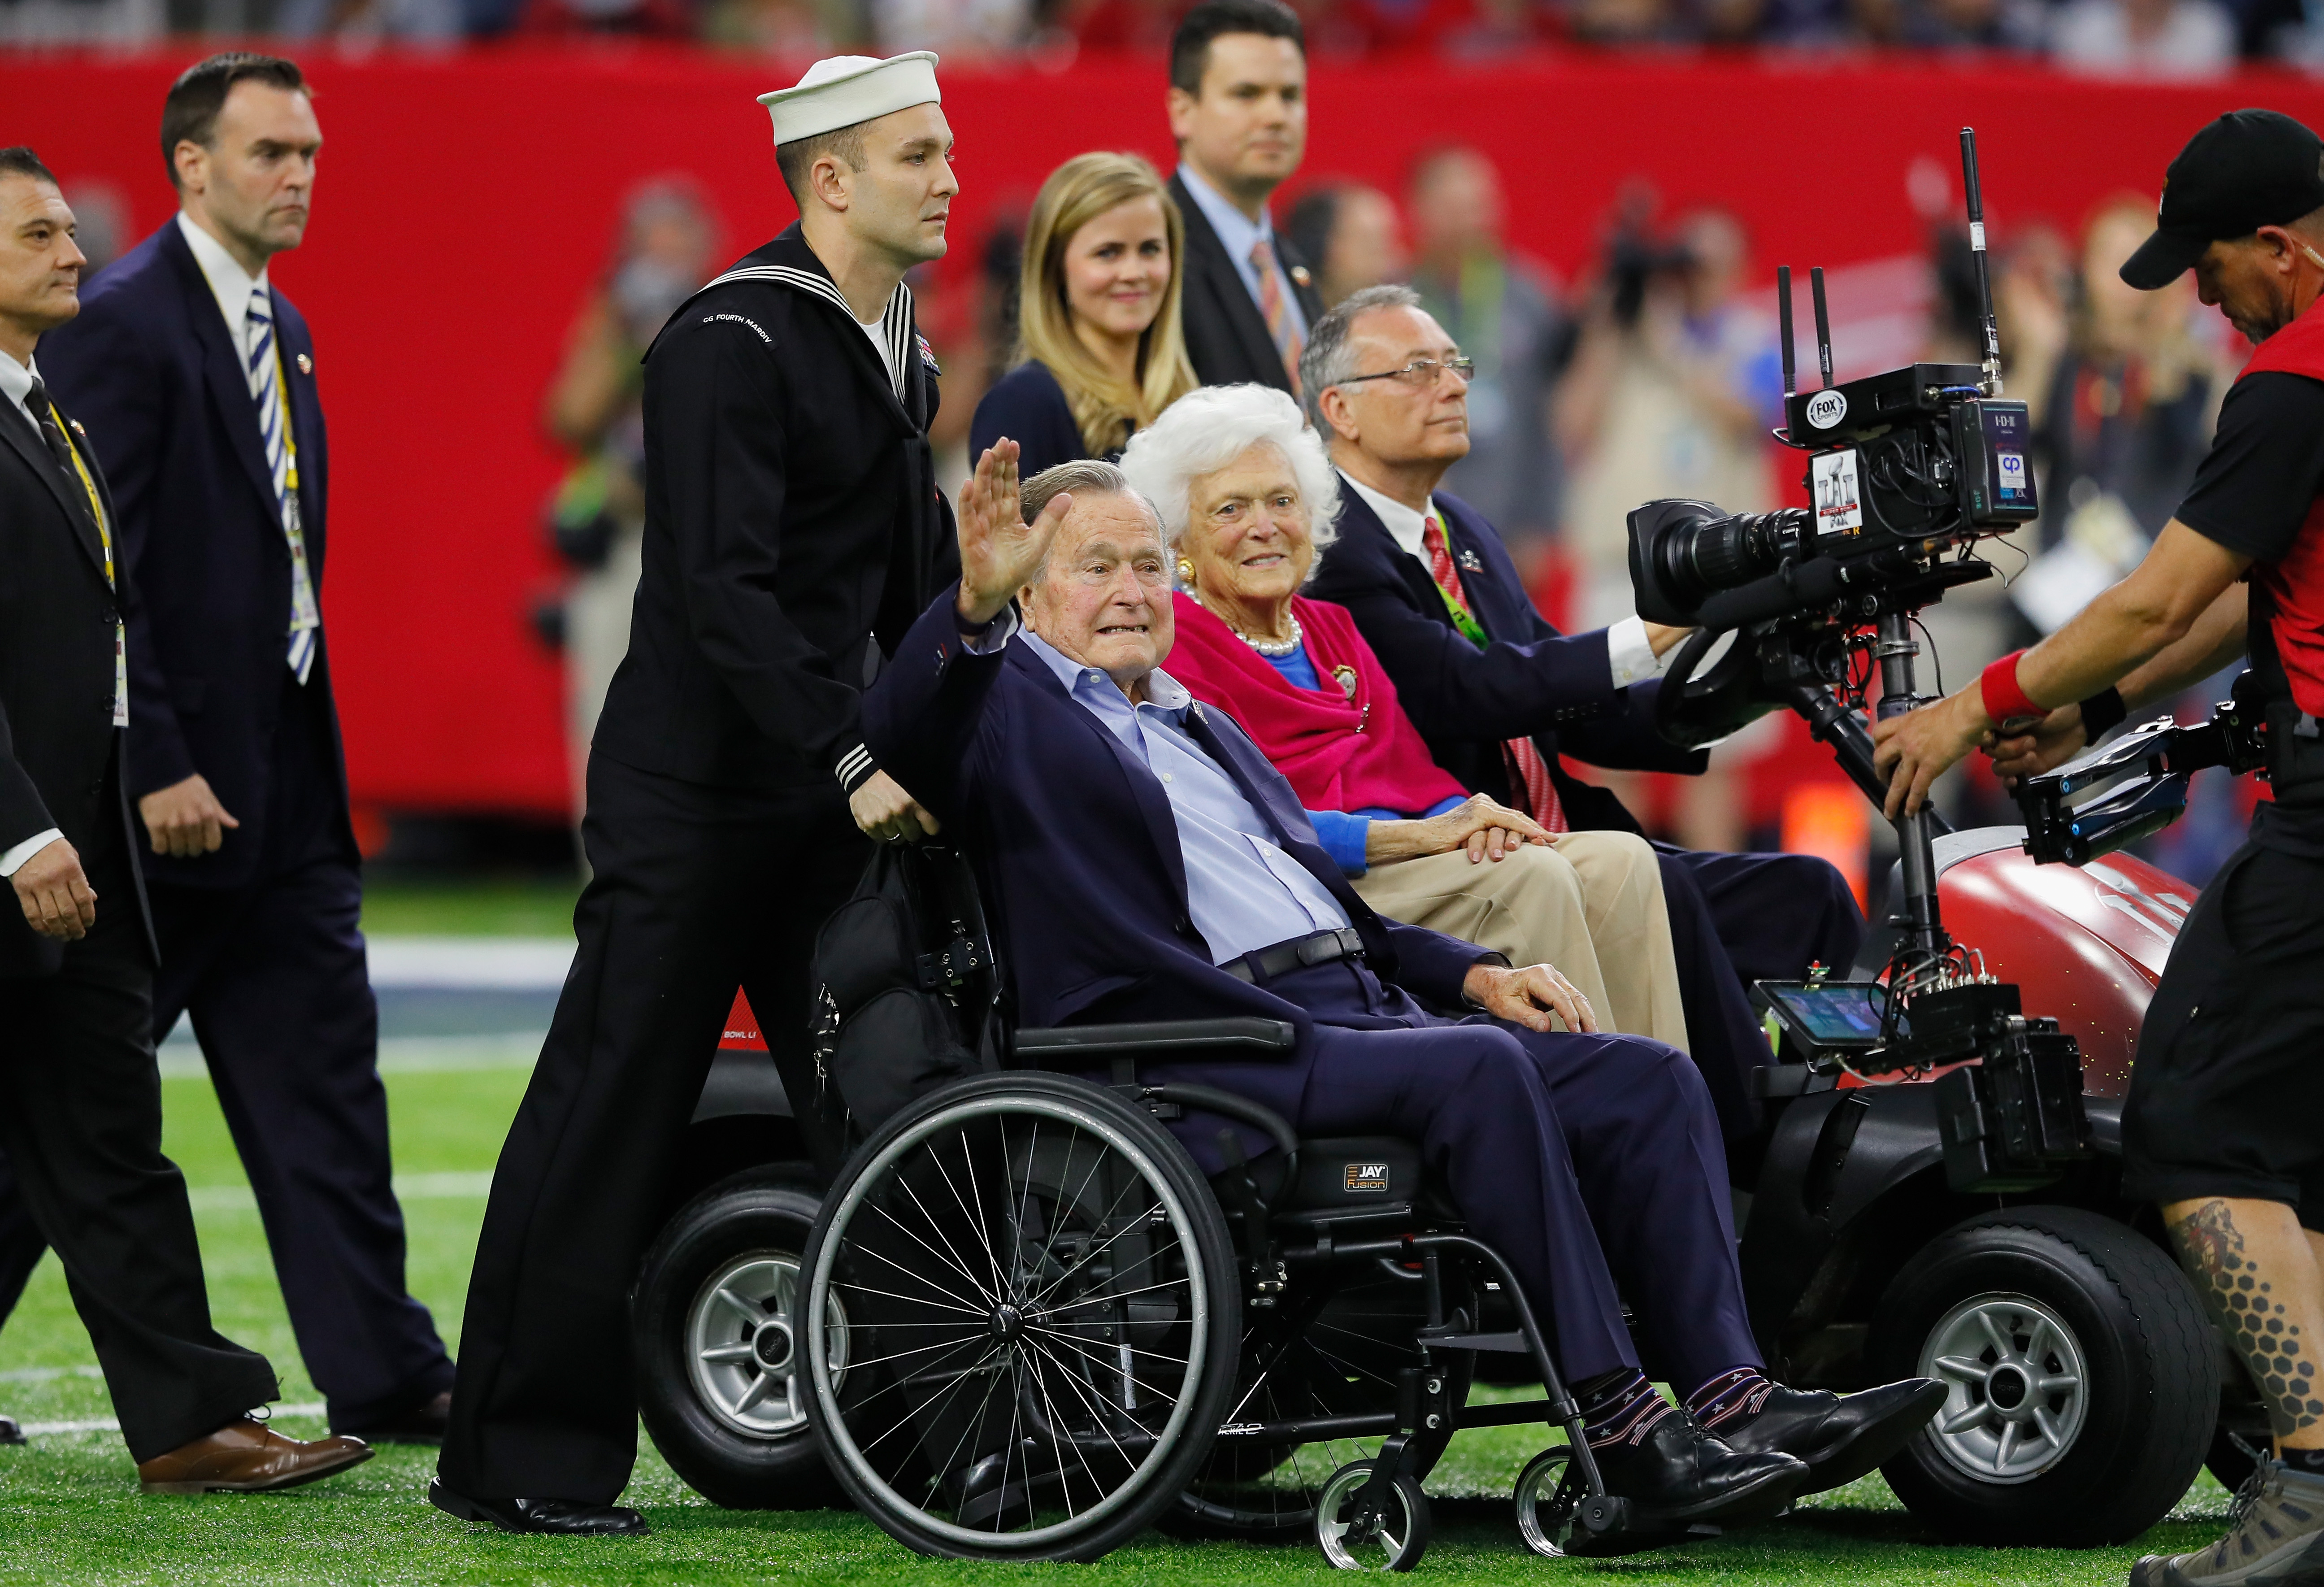 Houston Methodist honors Barbara and George HW Bush